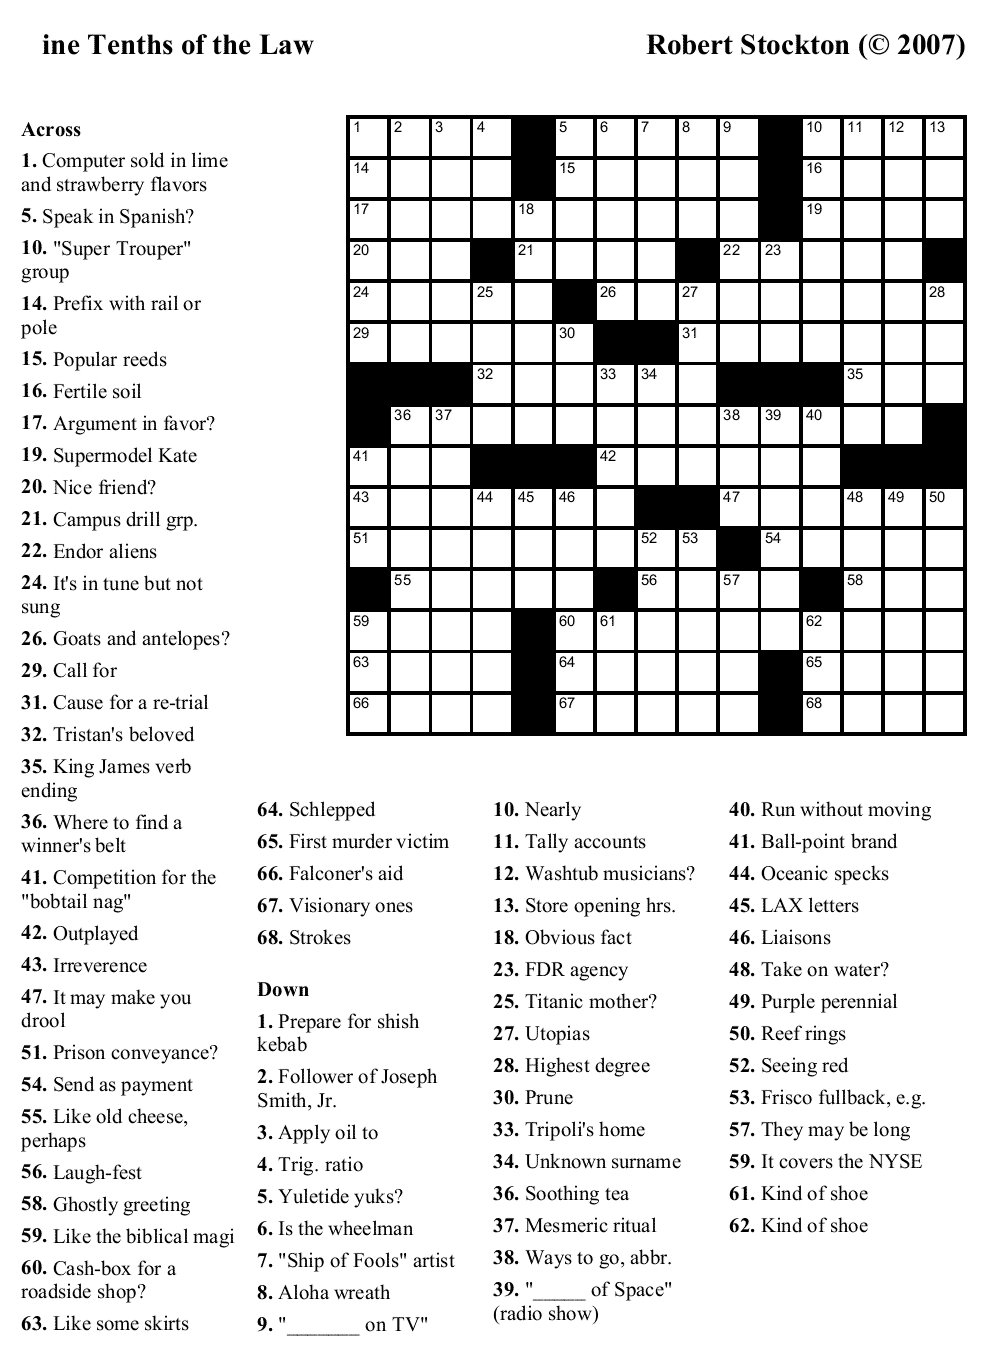 Easy Printable Crossword Puzzels - Infocap Ltd. - Printable Crossword Puzzles For College Students